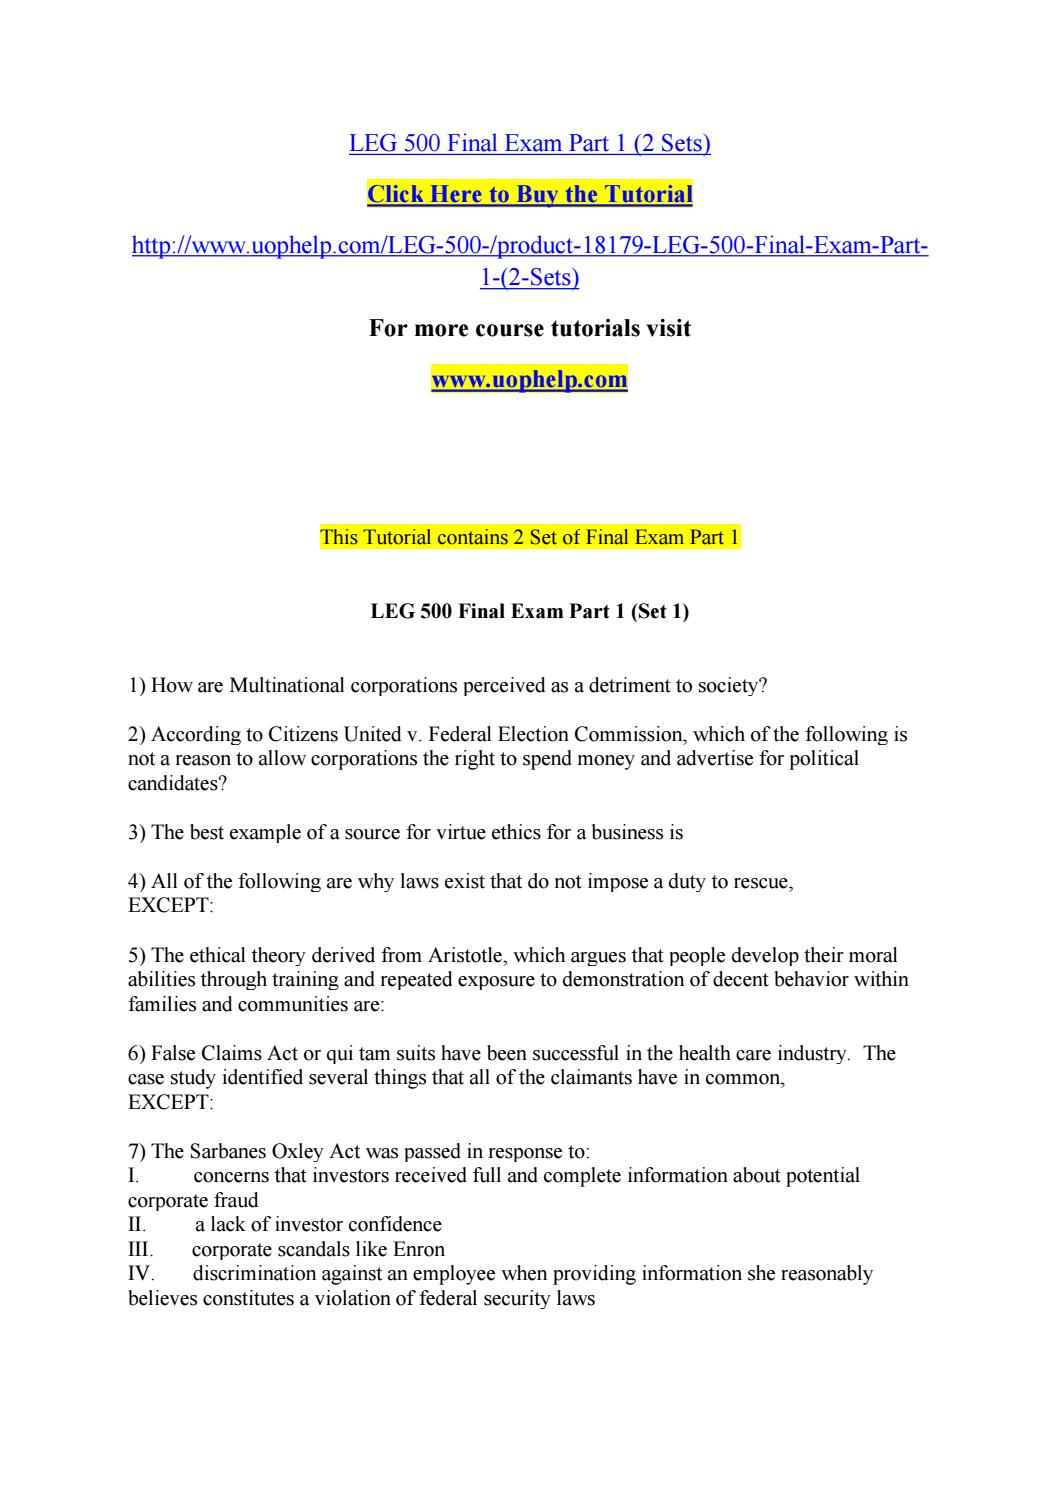 Leg 500 final exam part 1 (2 sets) by bluebell314 - issuu